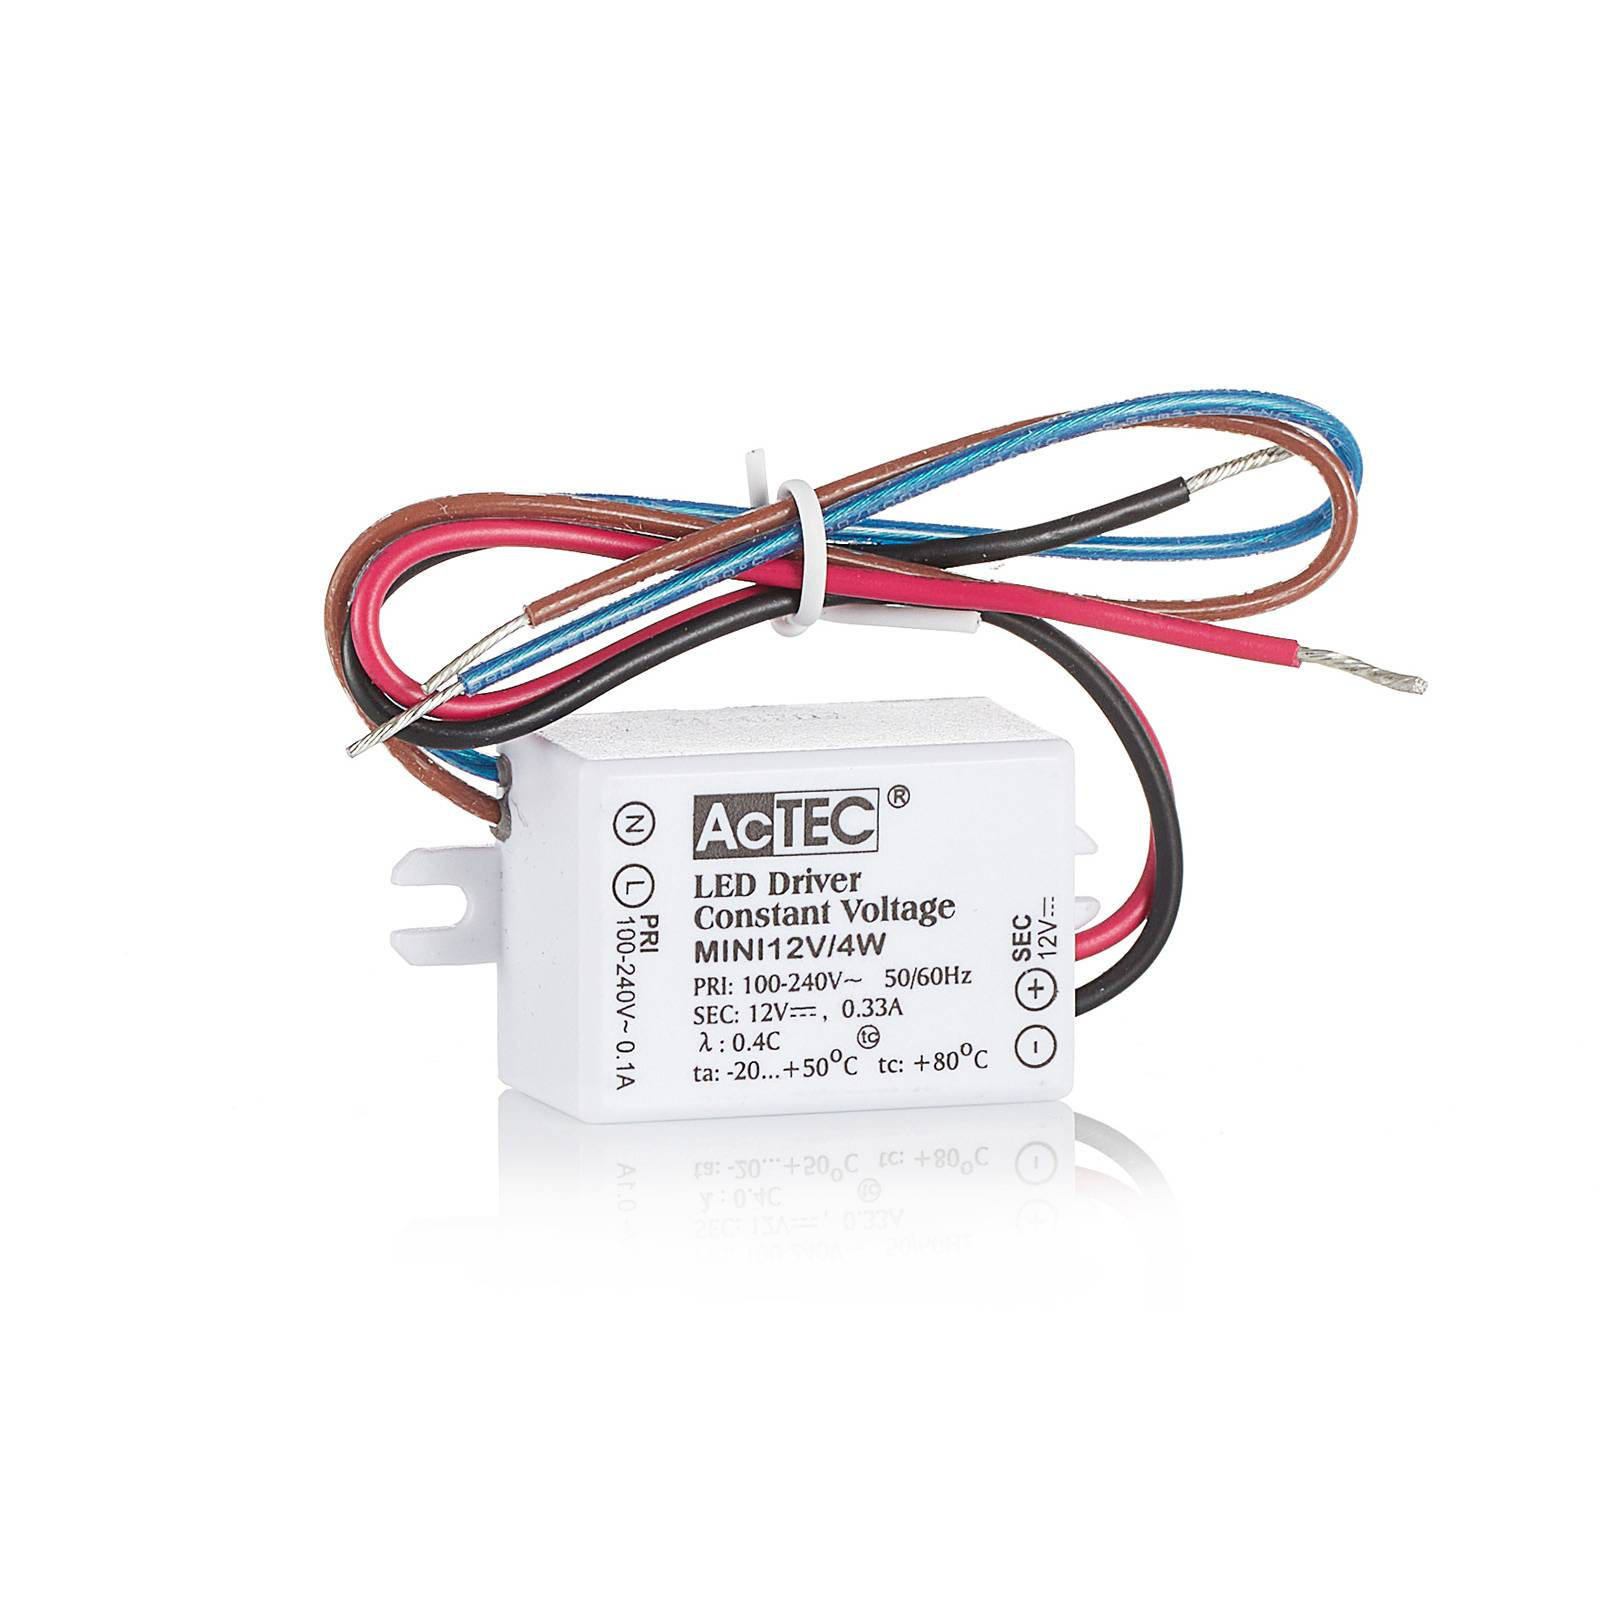 Bilde av Actec Mini Led-driver Cv 12 V, 4 W, Ip65